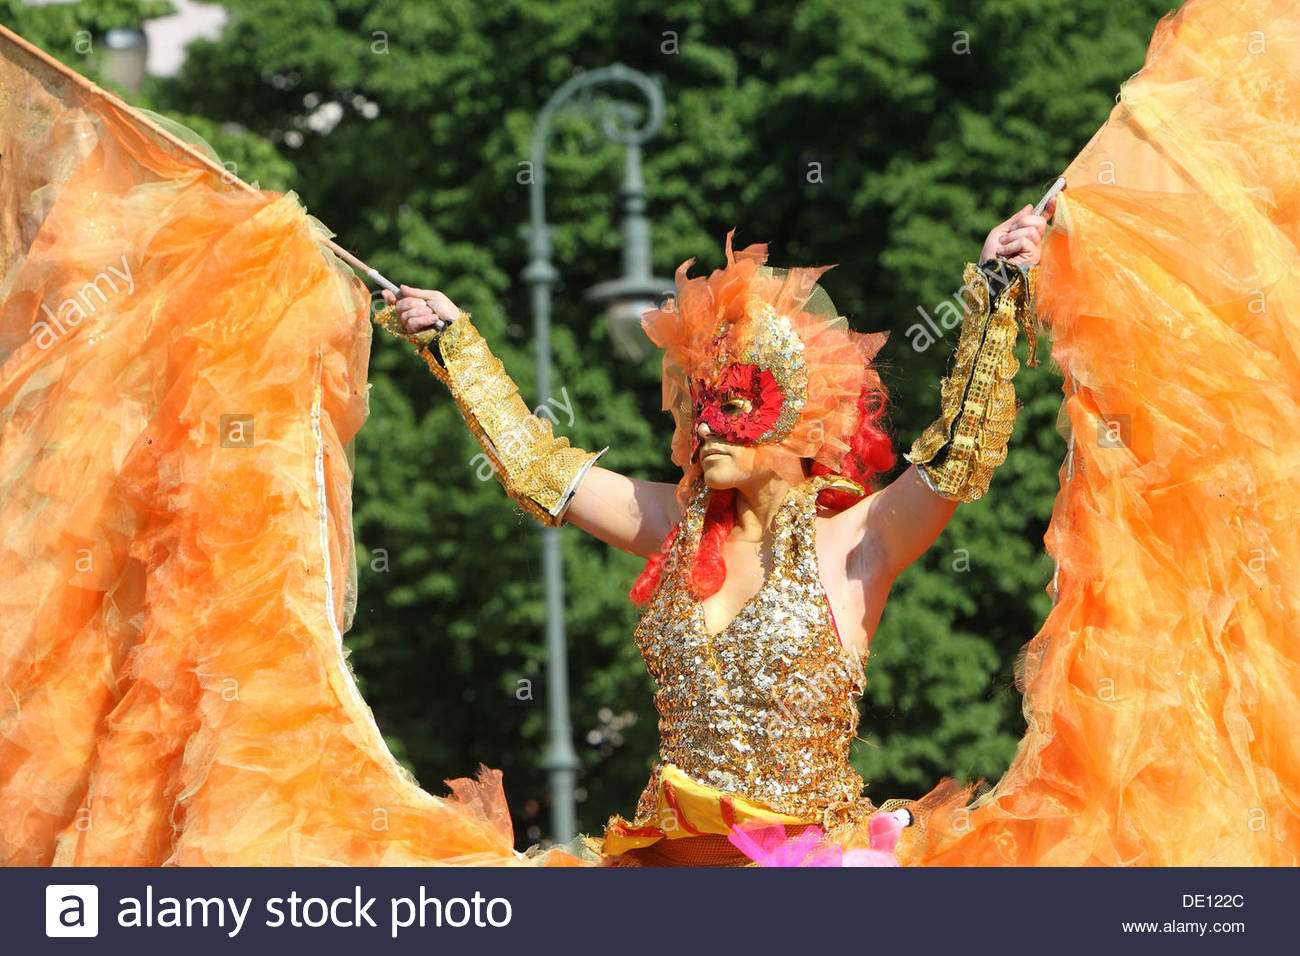 Dancer, Carnival of the Cultures, Berlin - Stock Image